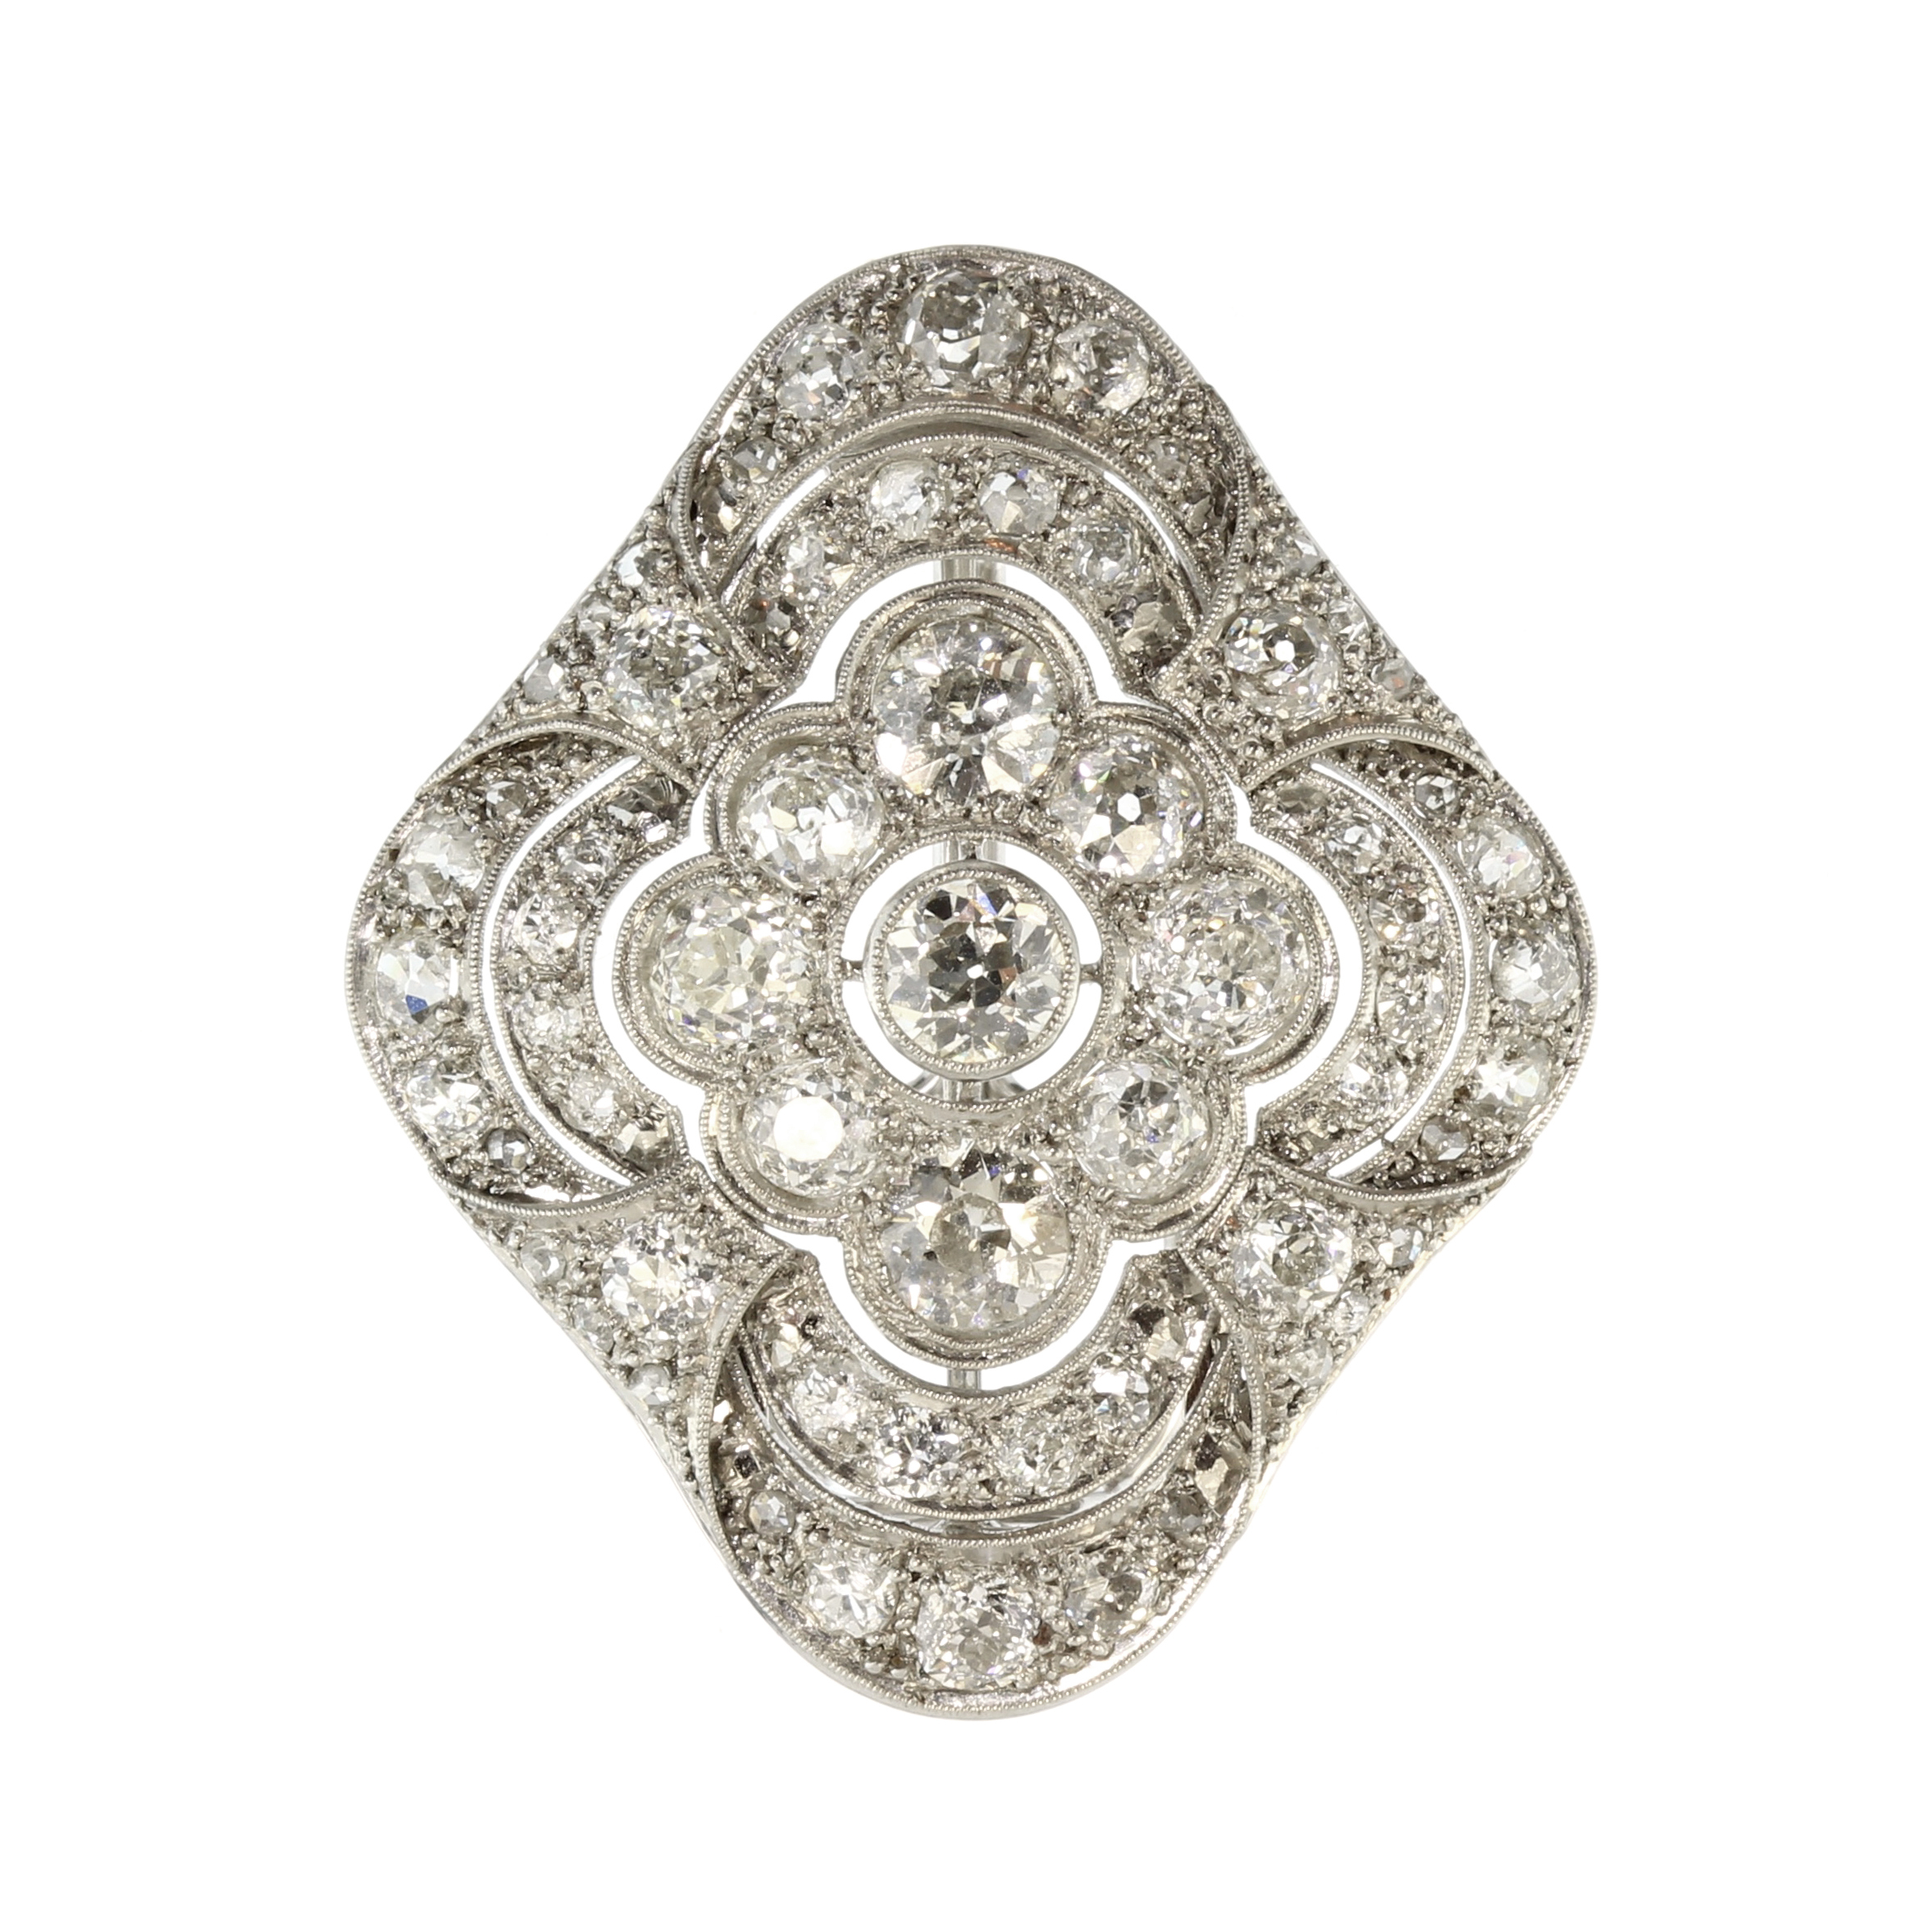 Los 32 - An antique Art Deco diamond scarf clip in 18ct white gold set with a central old round cut diamond